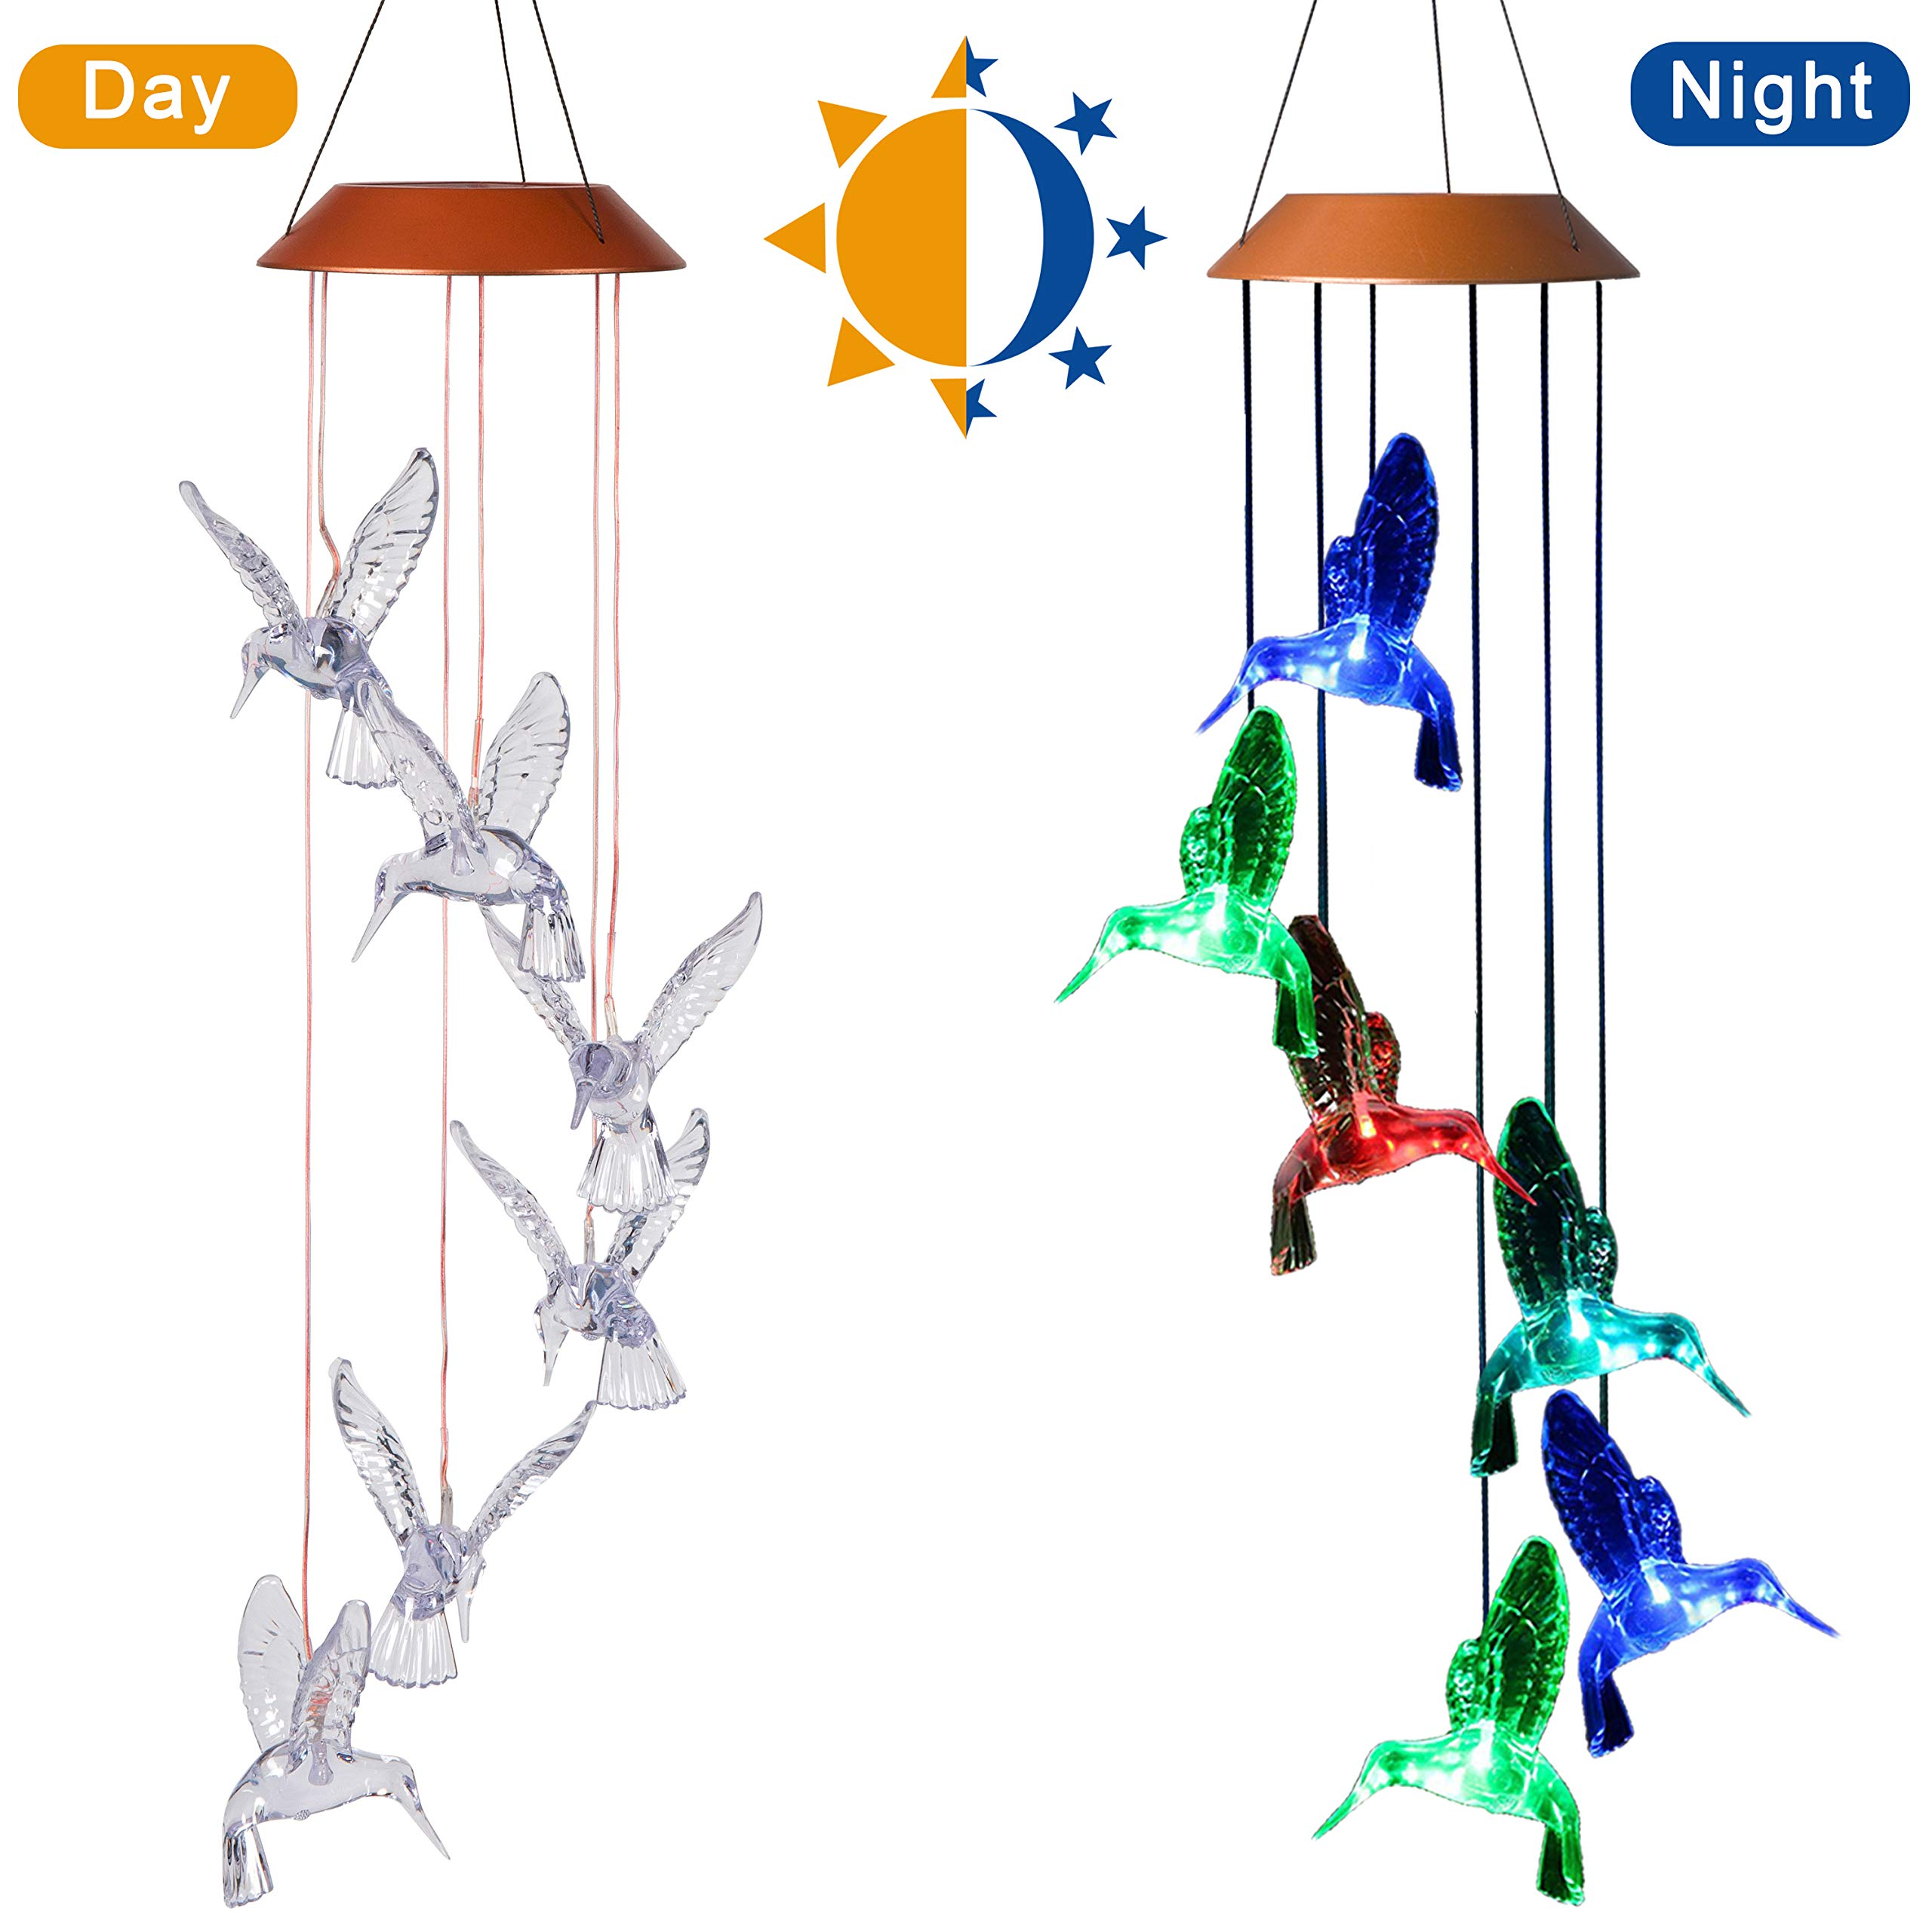 CXFF LED Solar Hummingbird Wind Chimes Outdoor - Waterproof Solar Powered LED Changing Light Color Six Hummingbirds Mobile Romantic Wind-Bell for Home, Party, Festival Decor, Night Garden Decoration